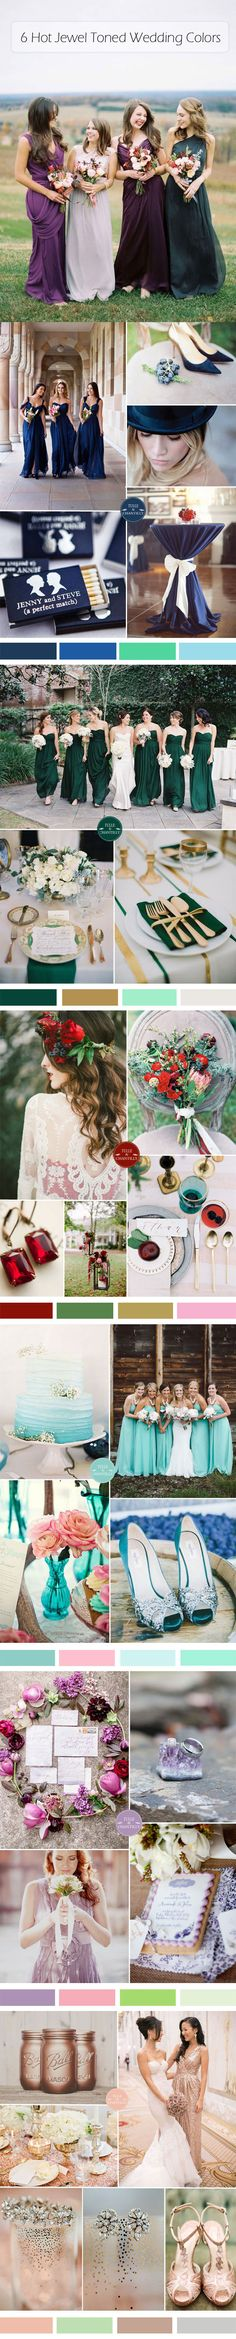 top 6 jewel tones wedding color ideas for fall wedding 2015- love the teal and blush one!